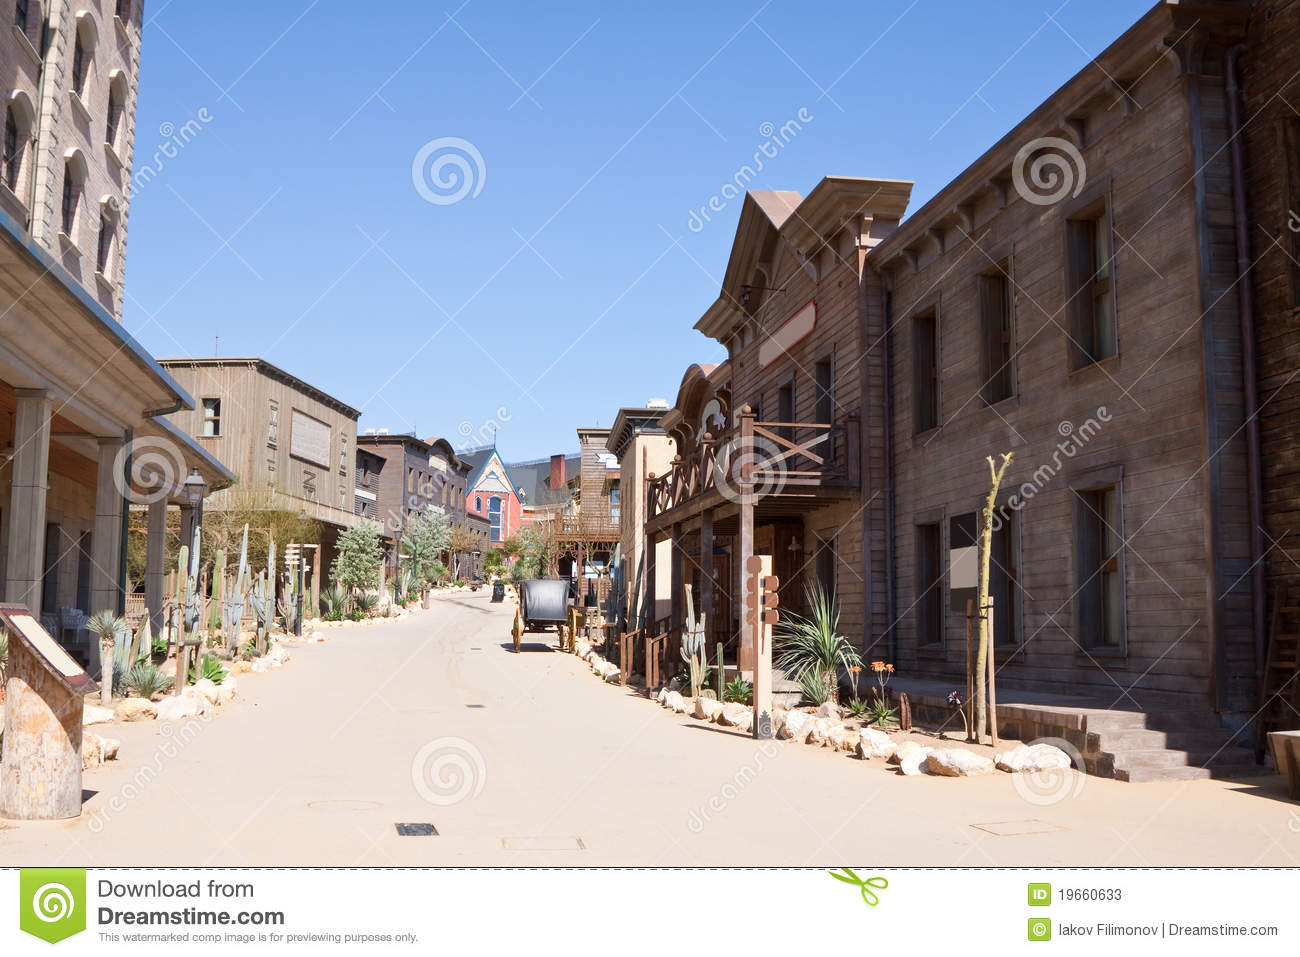 Download Far west town stock image. Image of country, america - 19660633